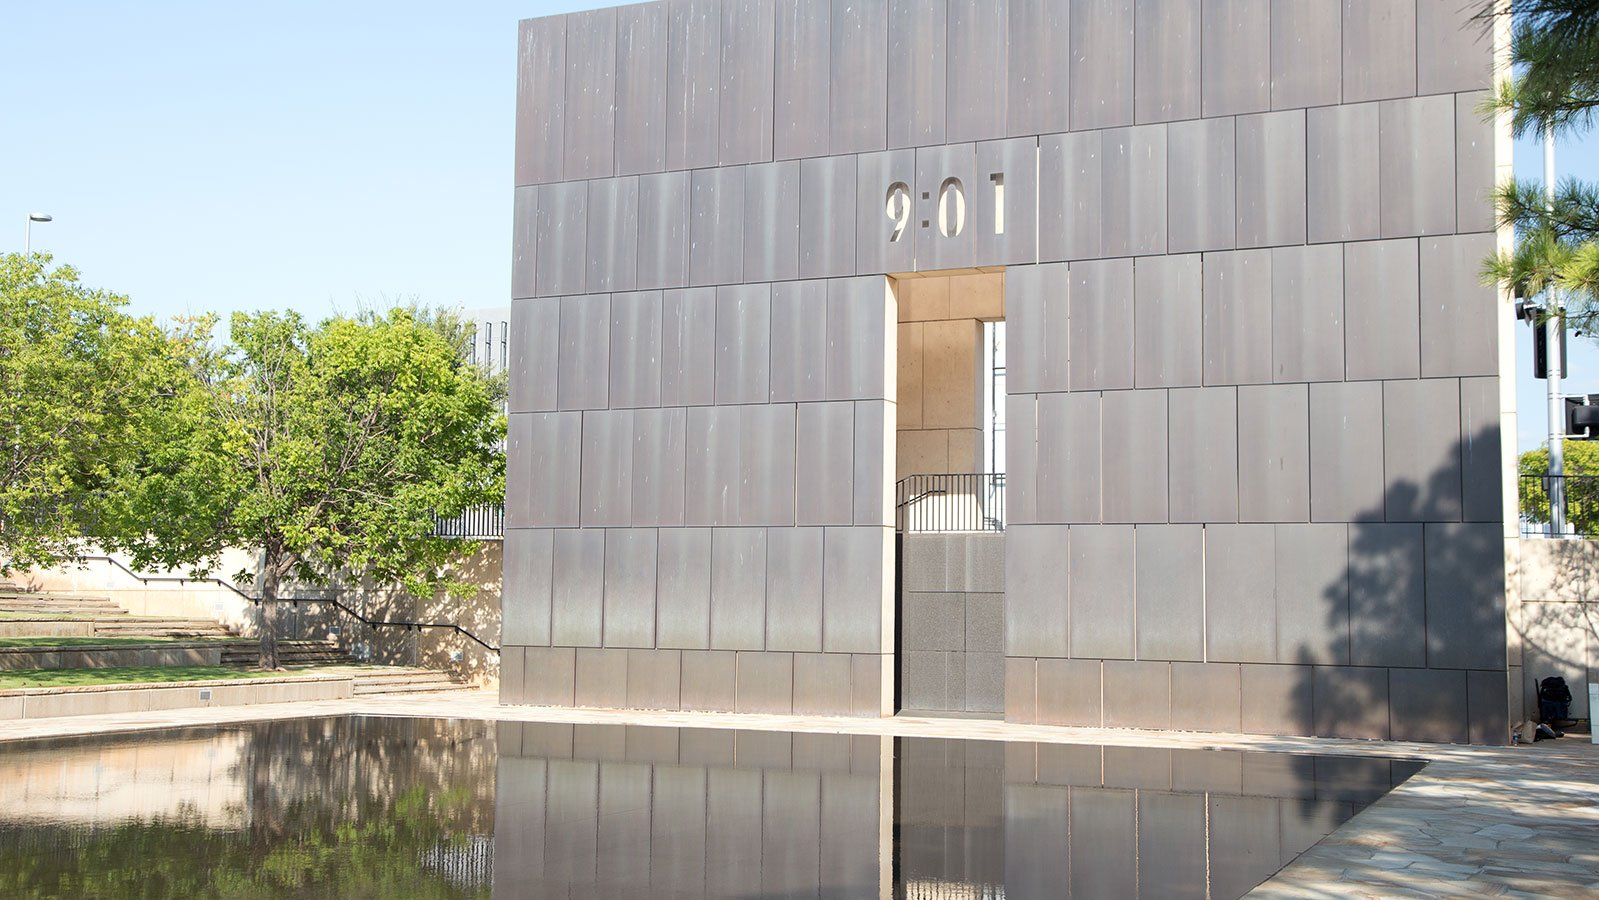 The Gates of Time, central elements of the Oklahoma City National Memorial, frame the moment of the blast